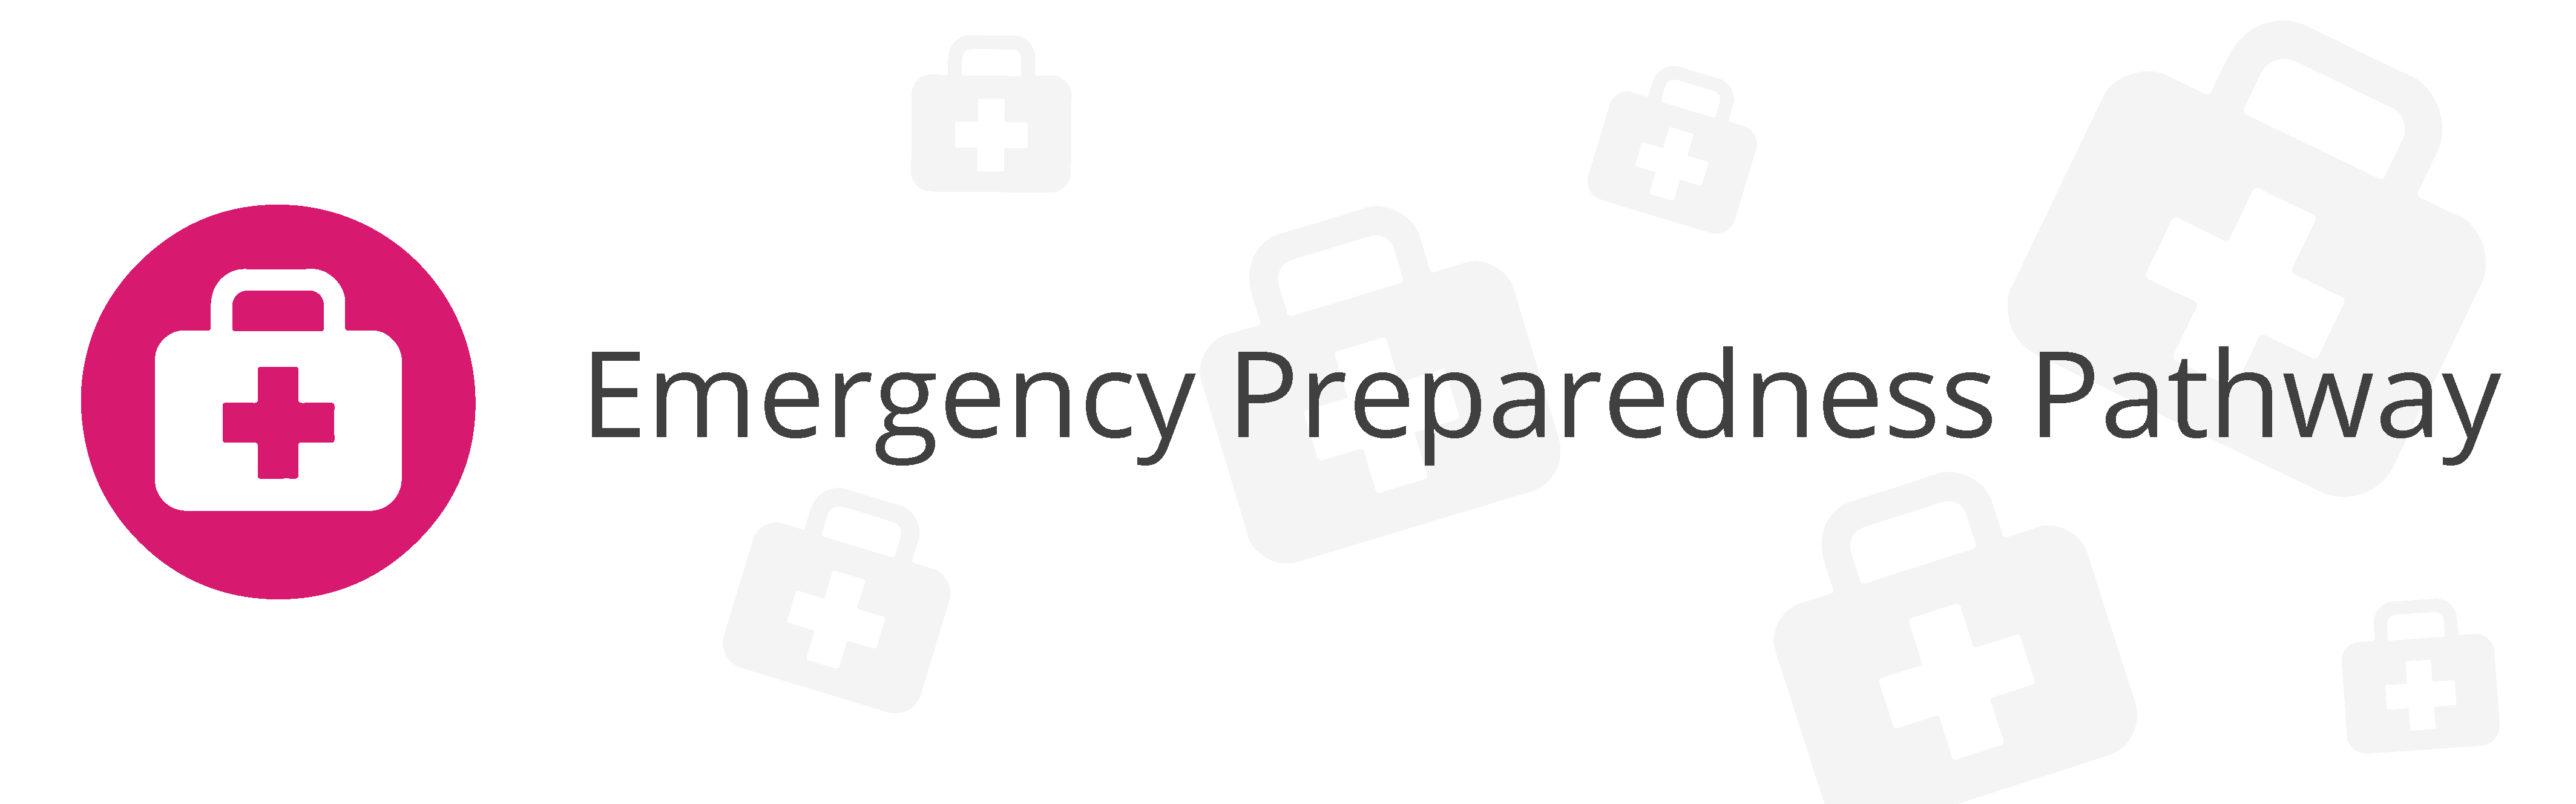 Pink circle with white doctor's bag icon inside & Emergency Preparedness Pathway text in black